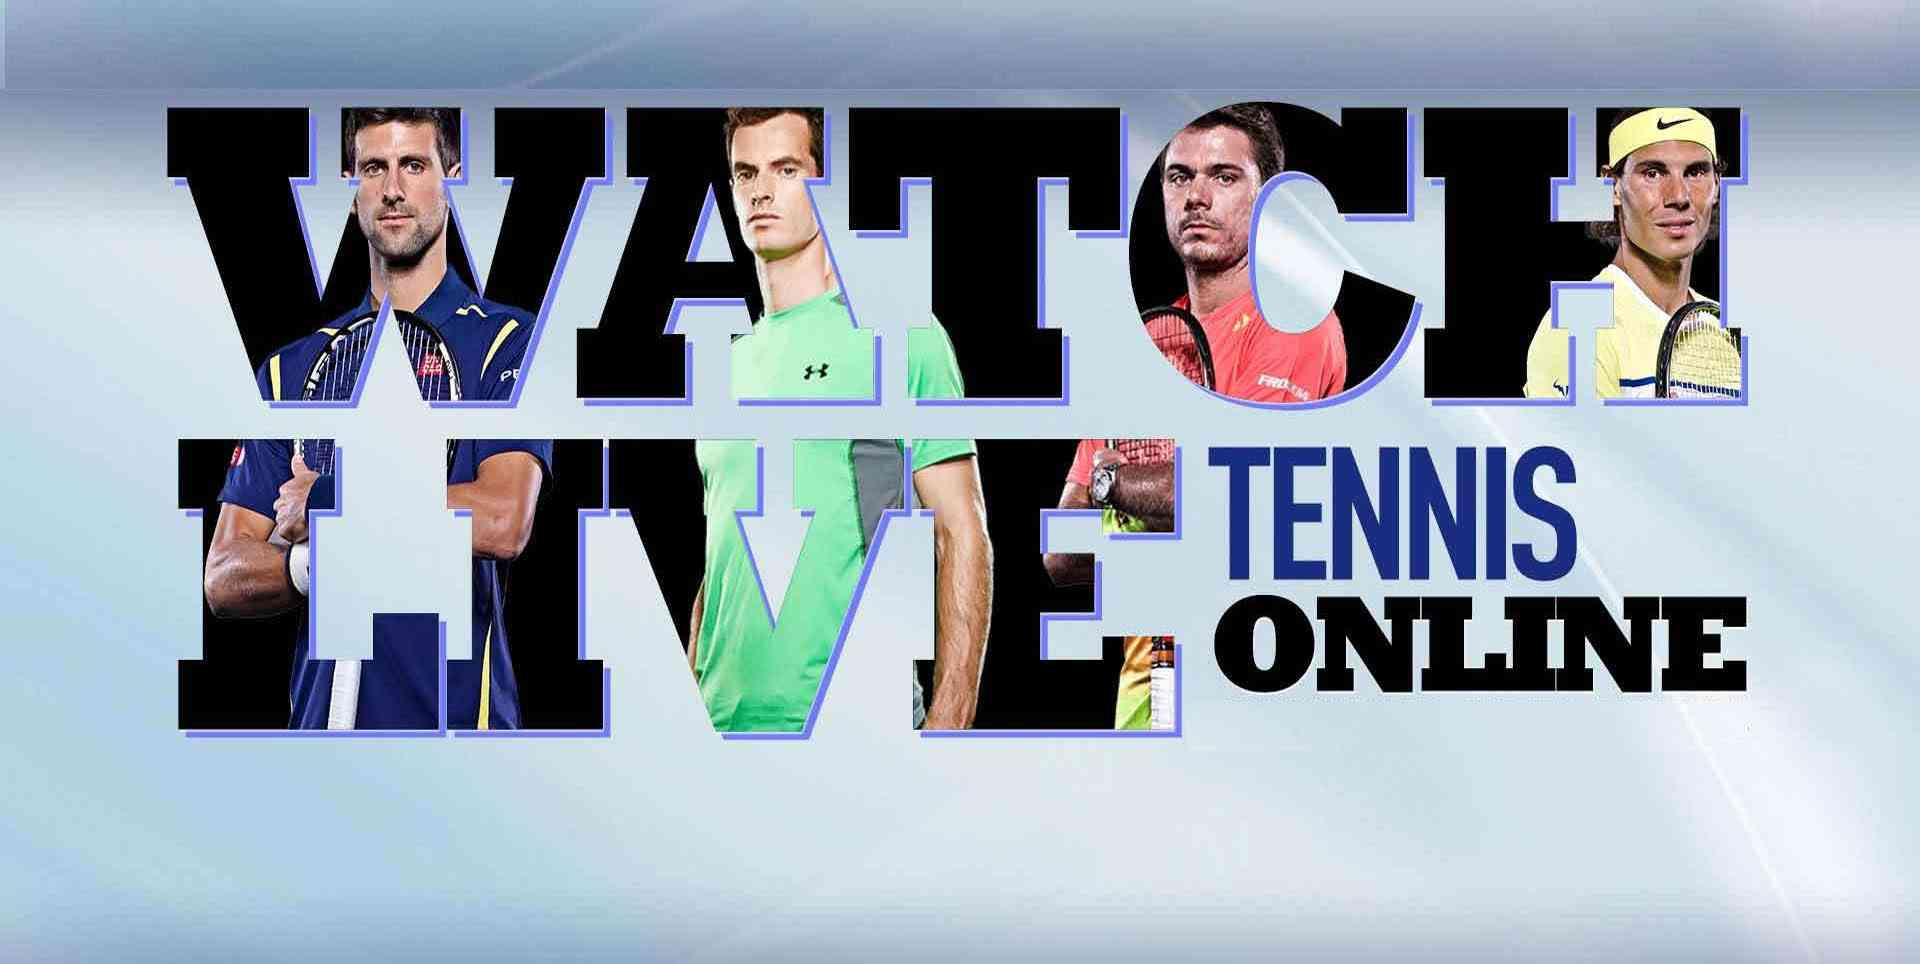 Watch R. Nadal vs S. Wawrinka Australian Open 2014 Mens Singles Finals Online